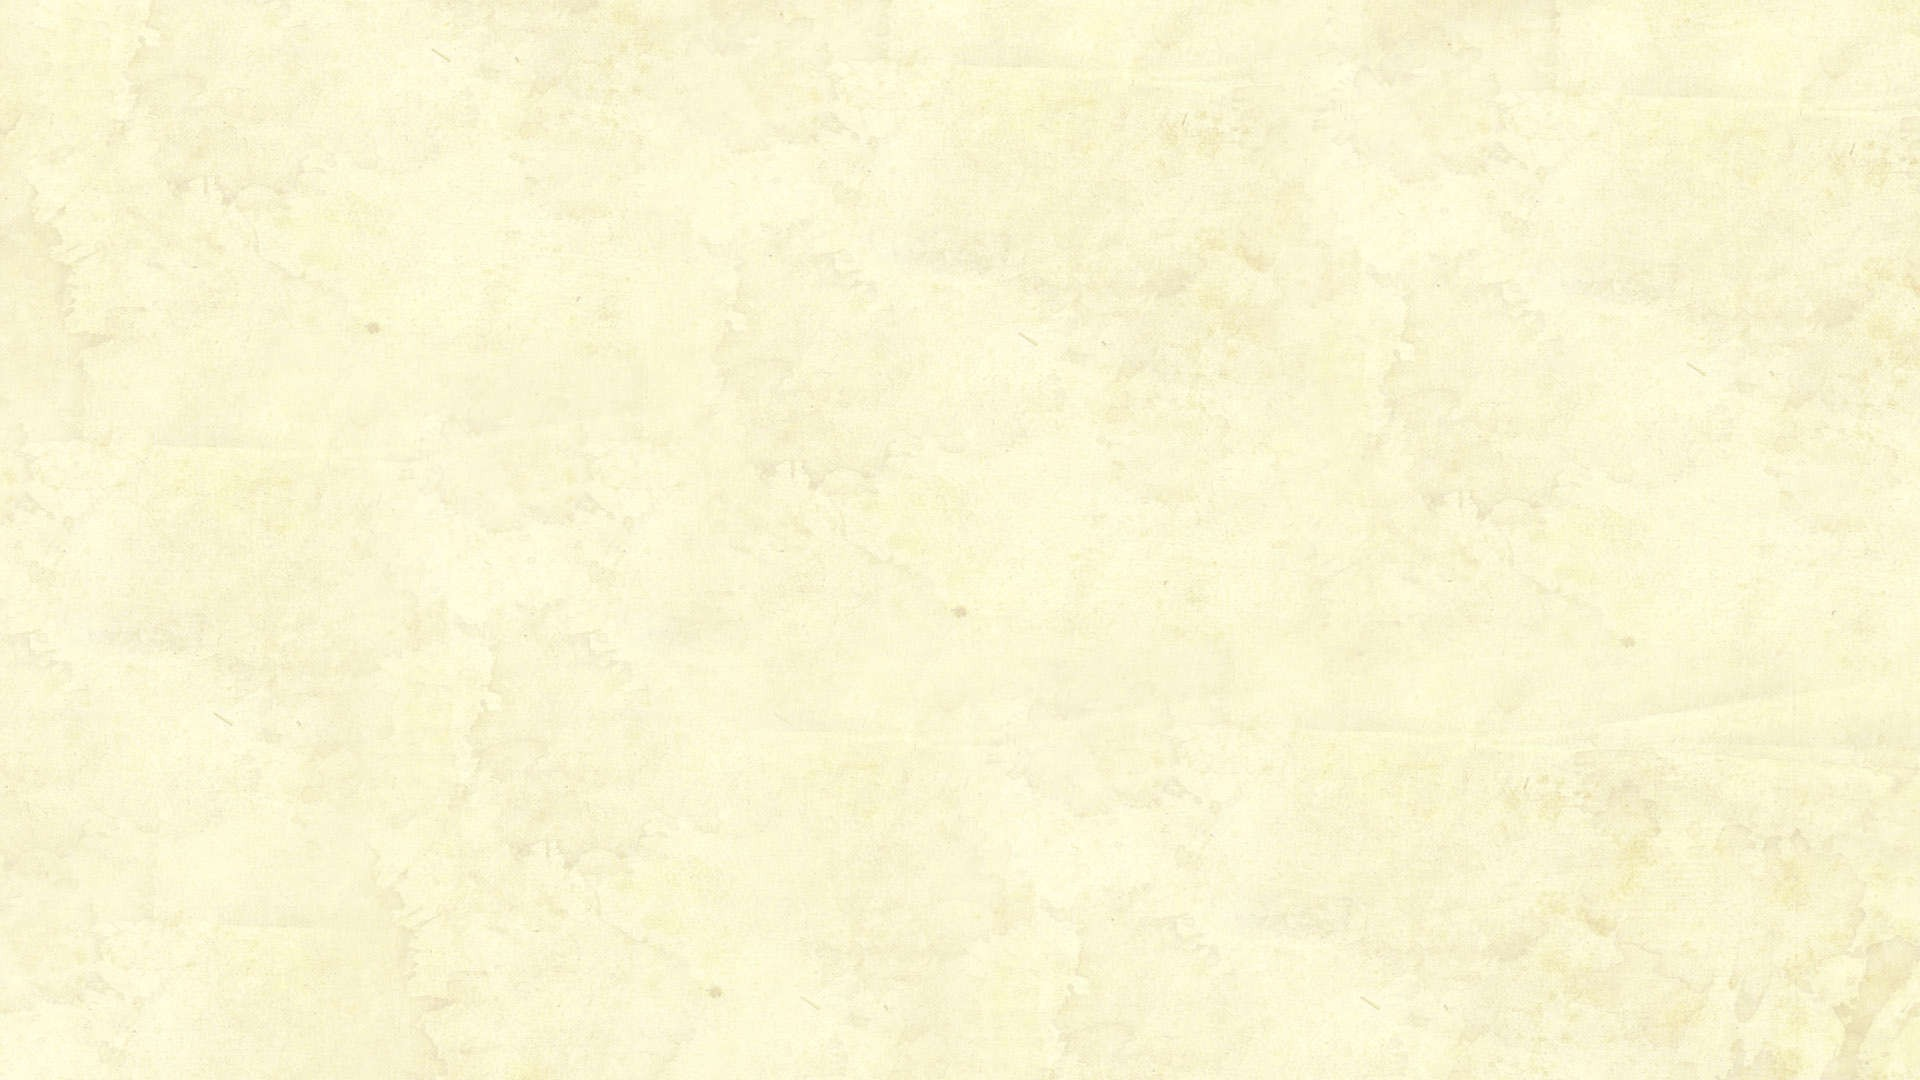 Papyrus powerpoint background